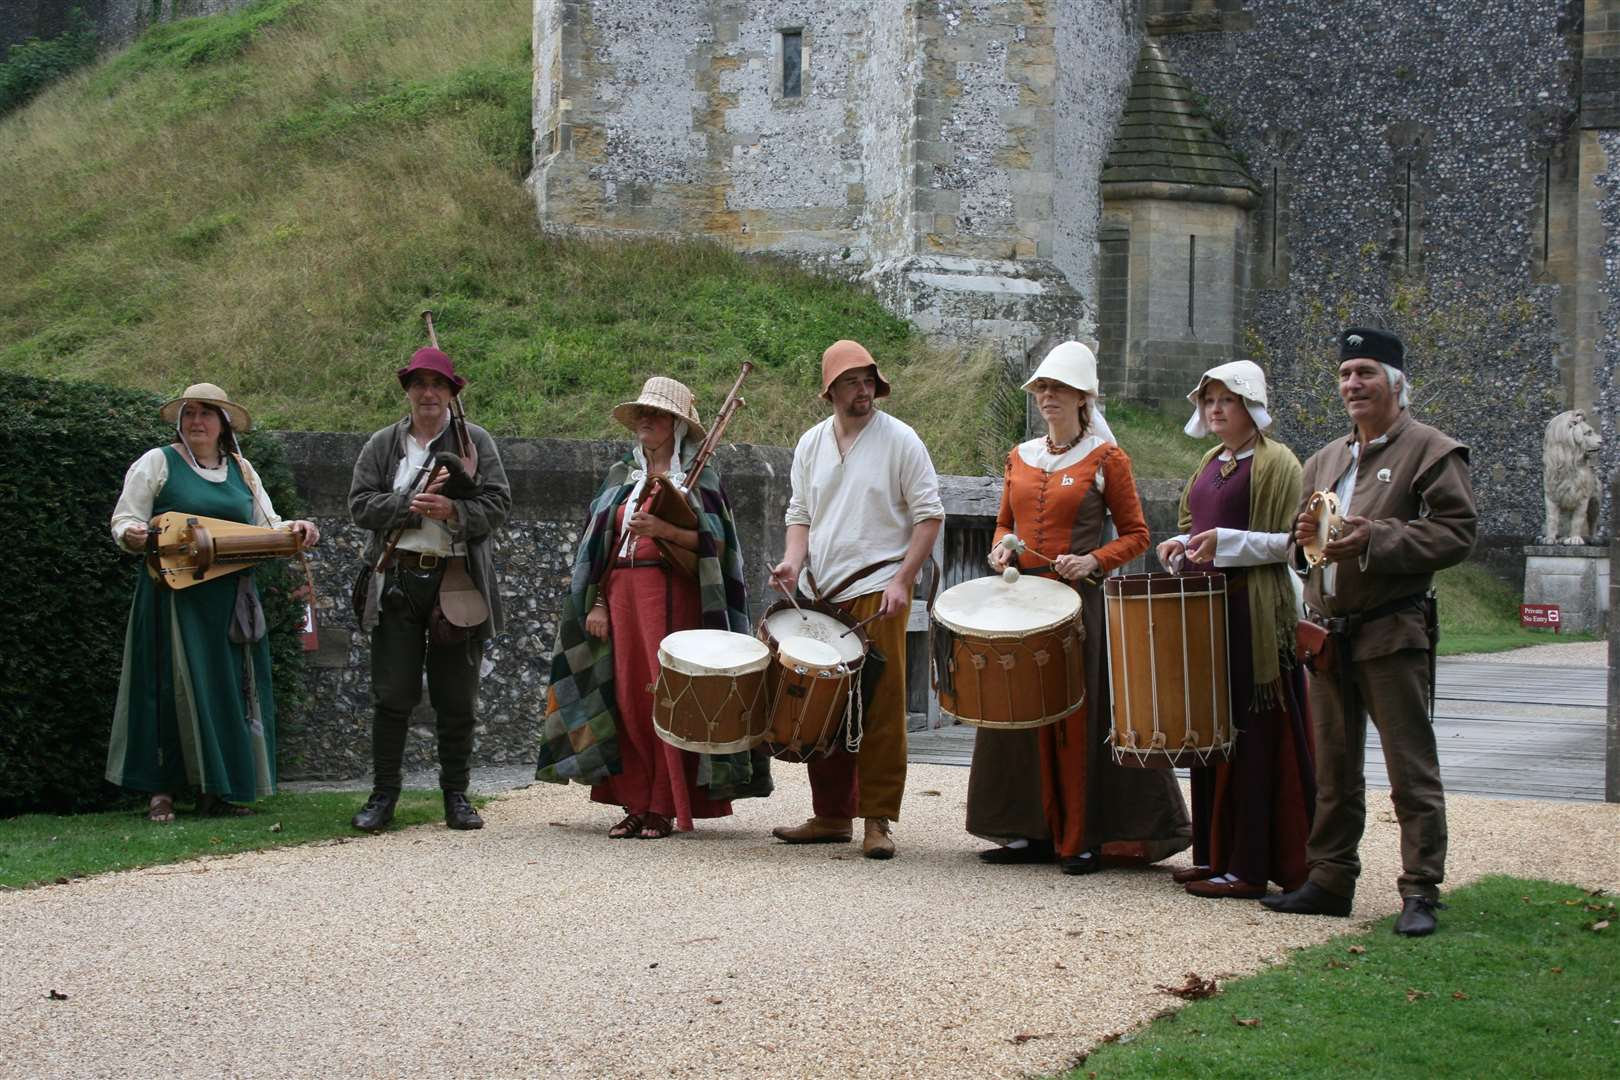 Medieval band Rough Musicke celebrating the Magna Carta arrival in Sandwich